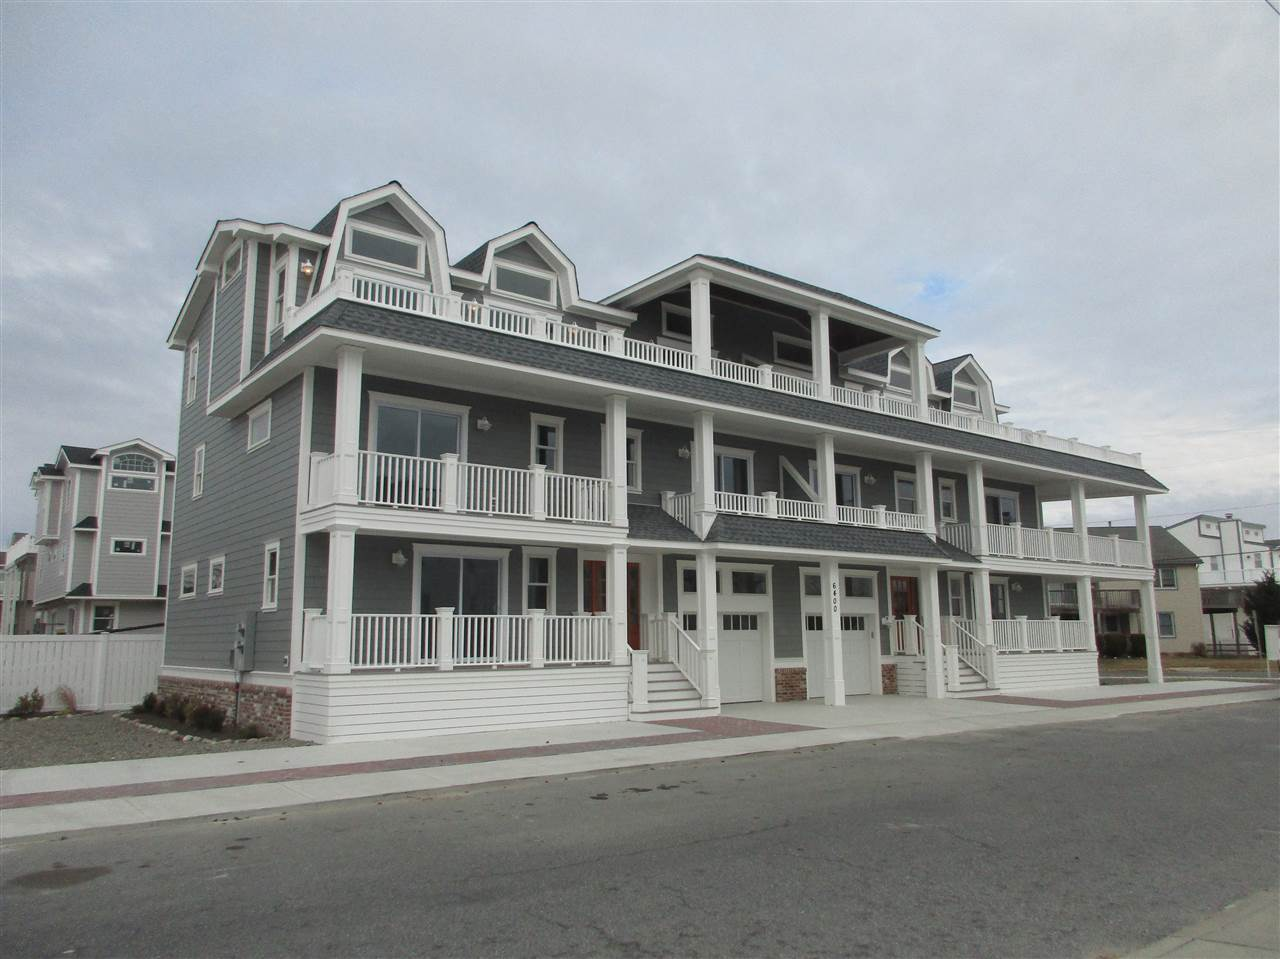 6400 Pleasure Avenue, Sea Isle City, NJ 08243